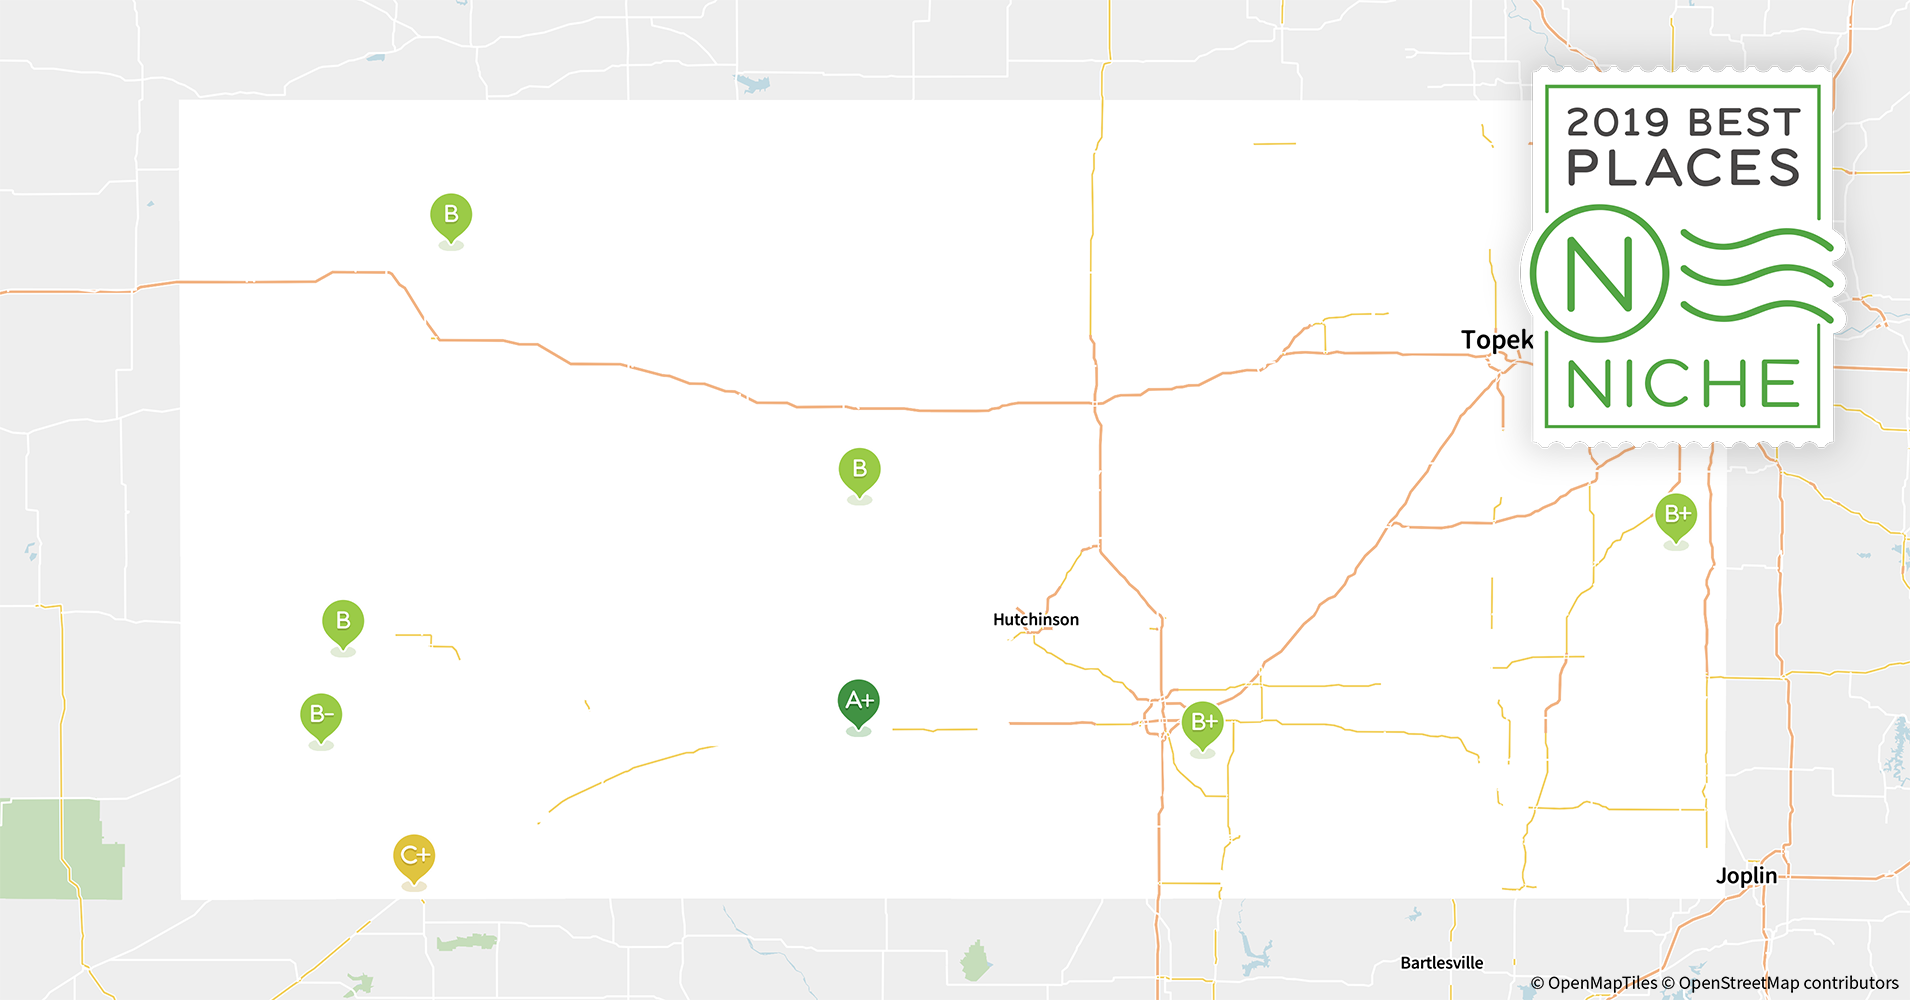 Hutchinson Ks Zip Code Map.2019 Best Places To Live In Kansas Niche